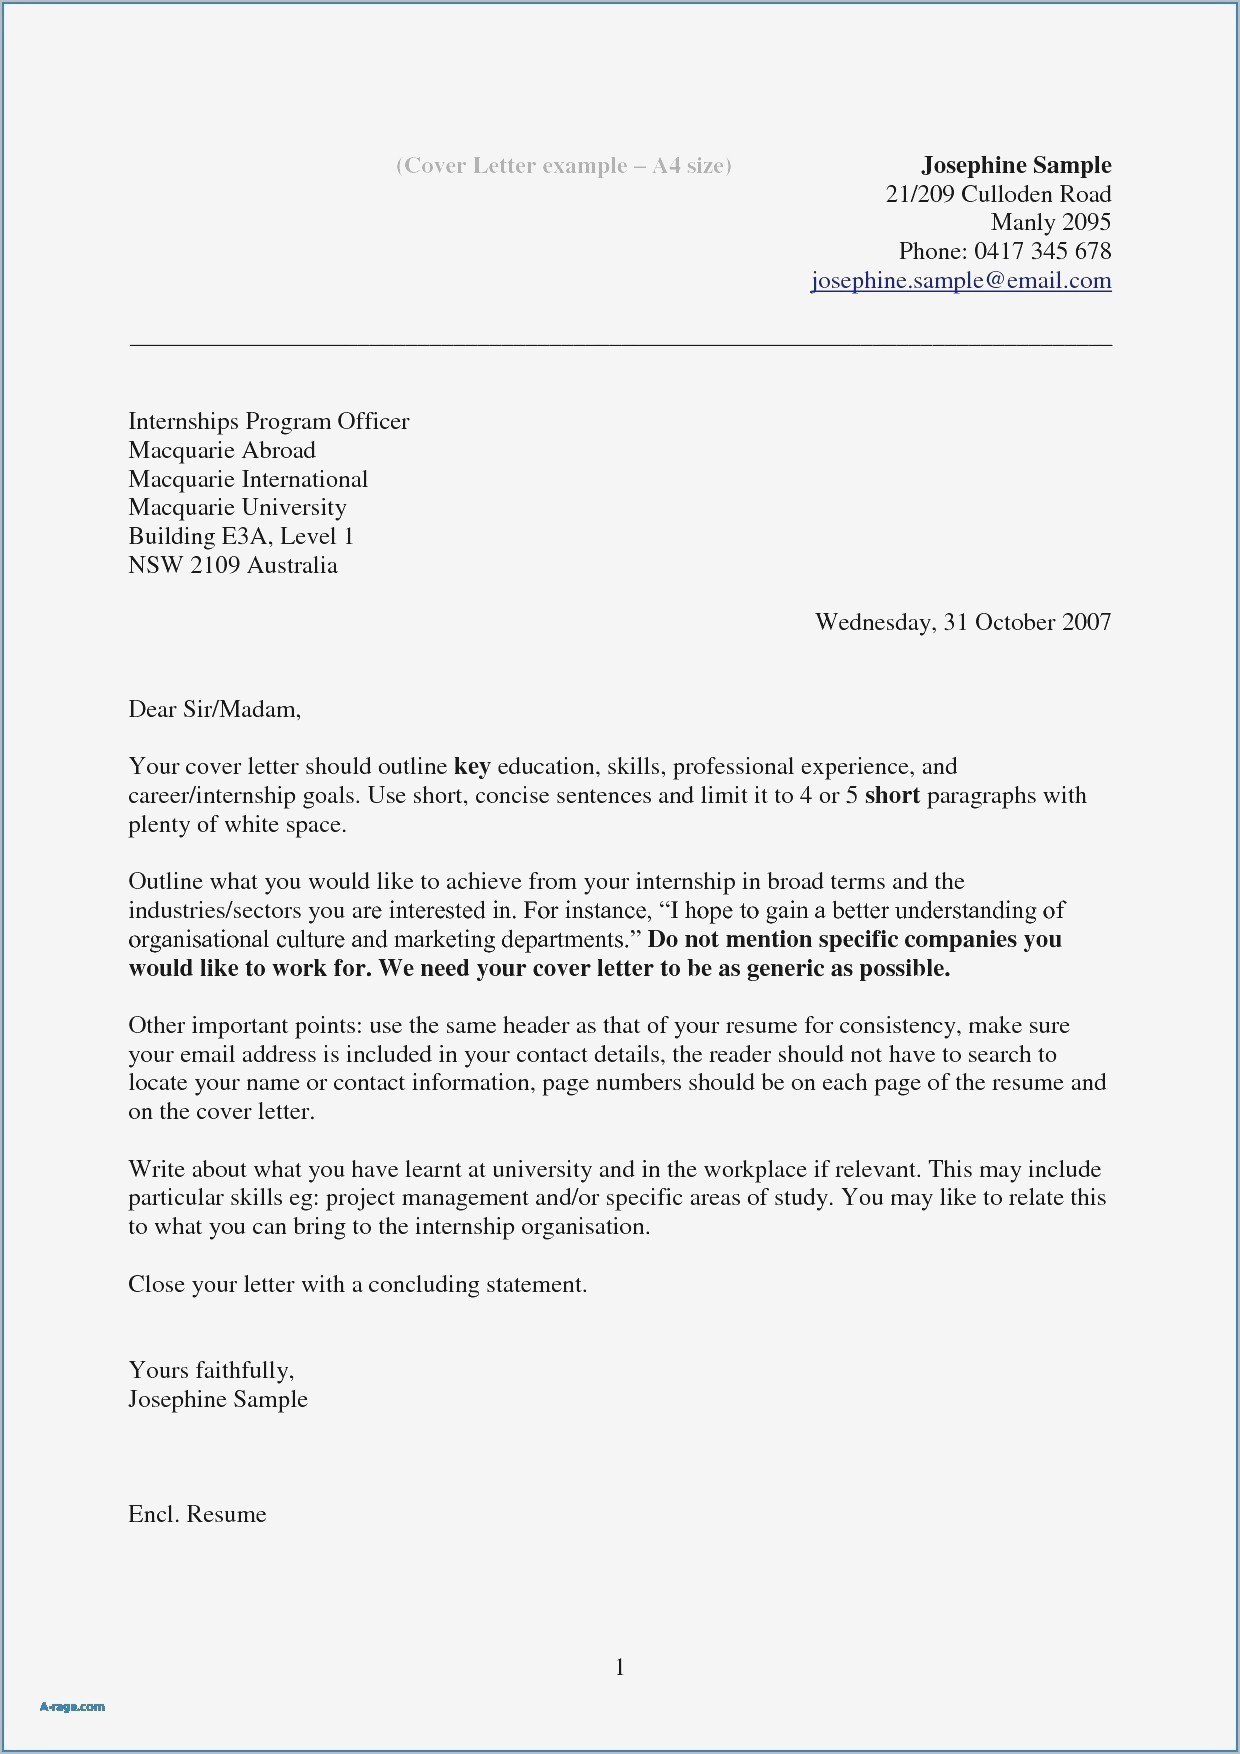 Email Cover Letter Template - Cover Letter for Pany Not Hiring